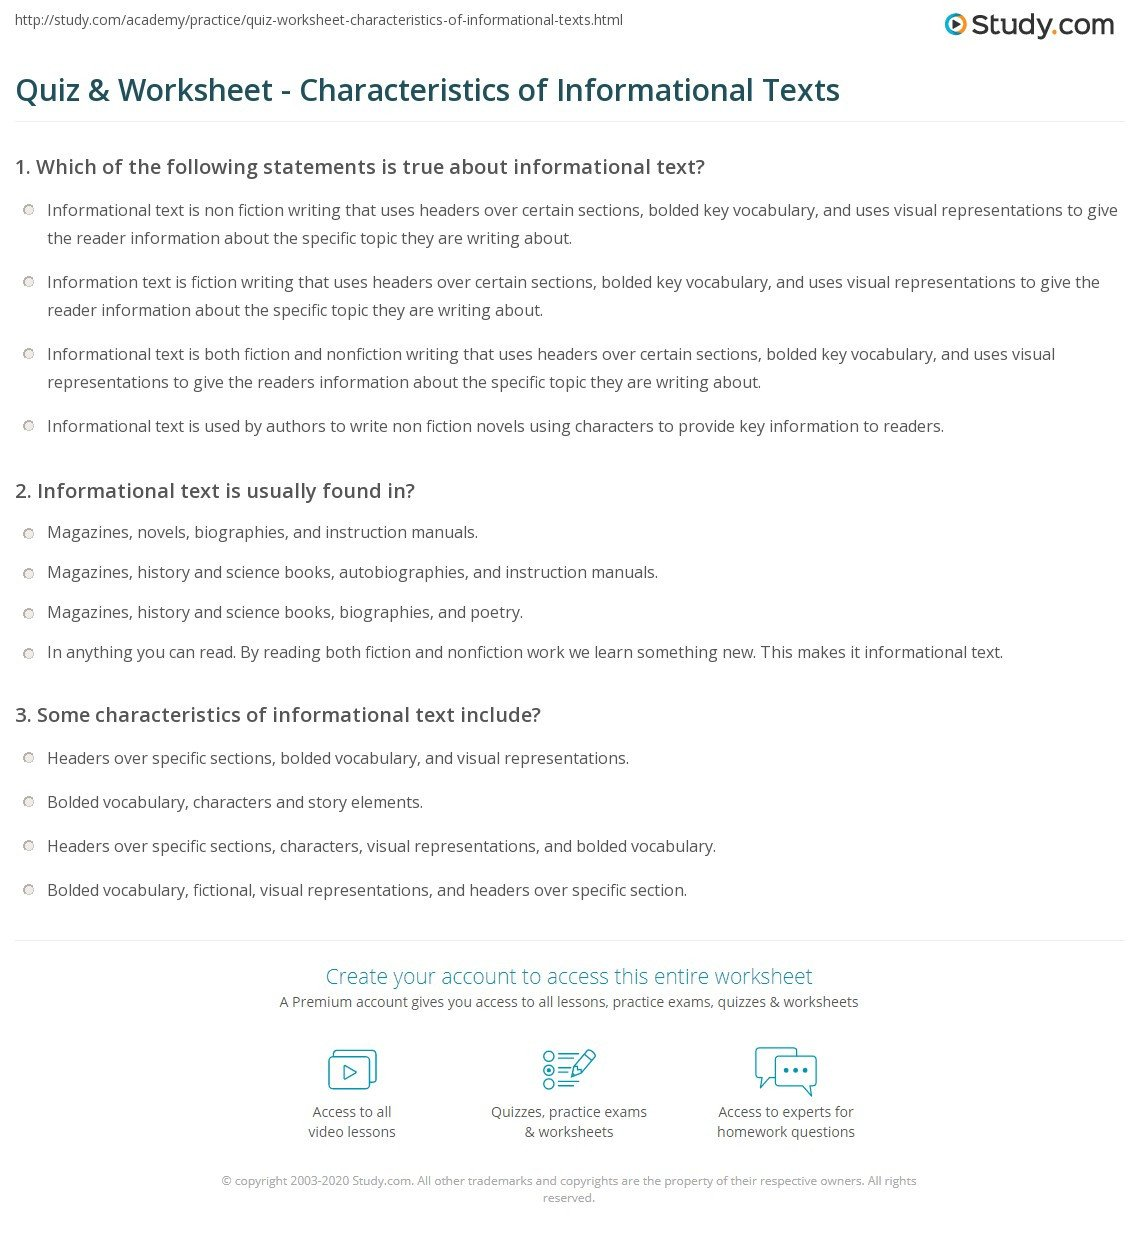 quiz worksheet characteristics of informational texts